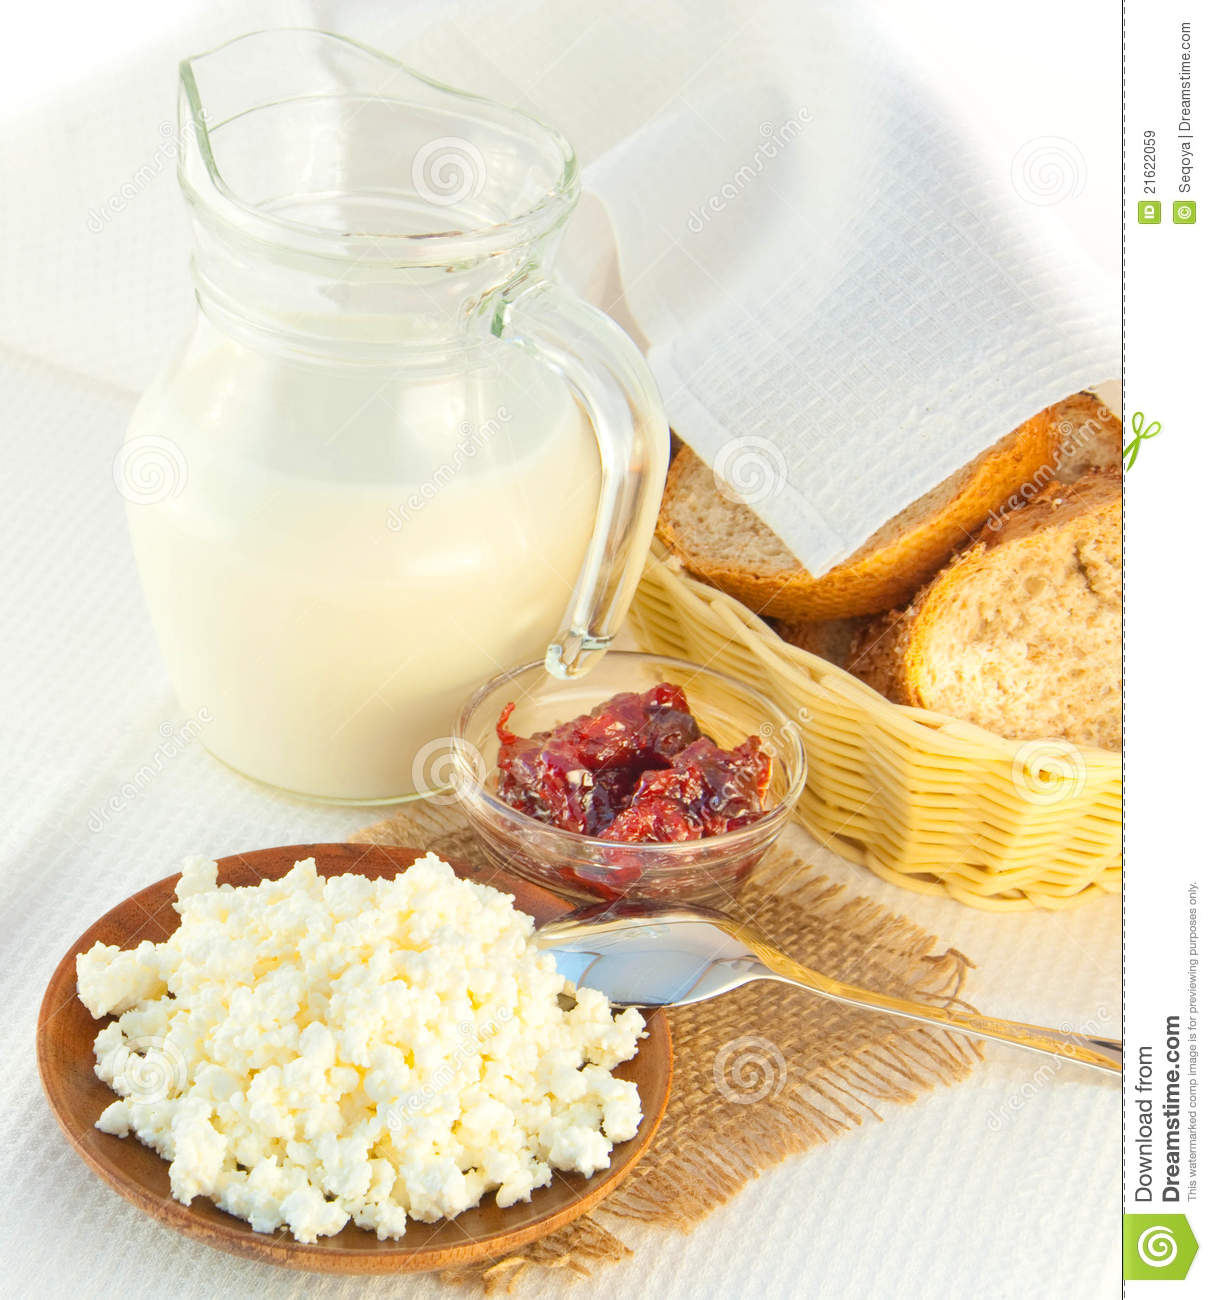 Cottage Cheese With Jam: Jug With Milk, Cottage Cheese And Jam Royalty Free Stock